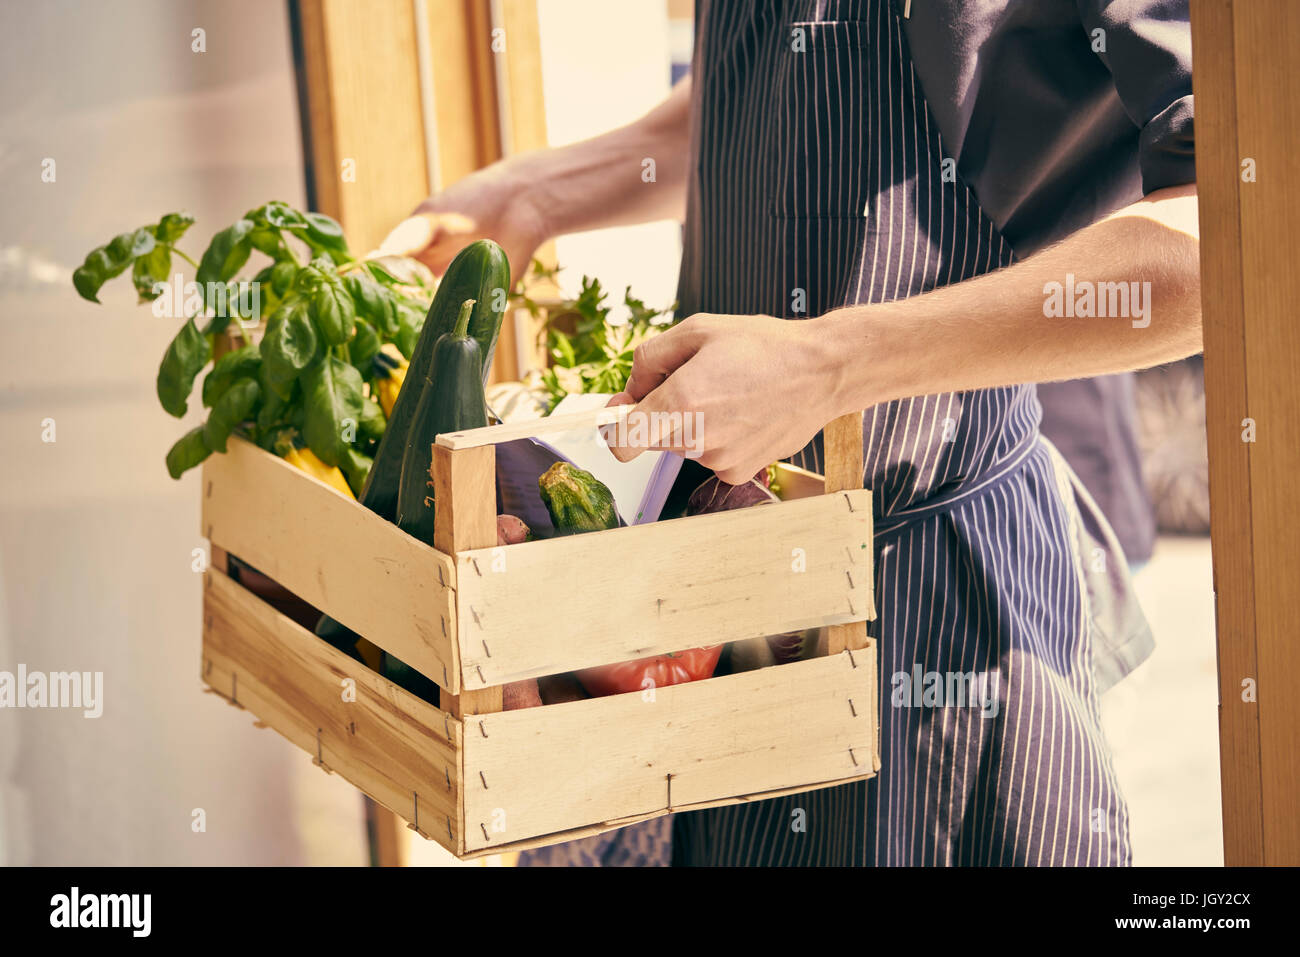 Cropped view of chef carrying crate of vegetables - Stock Image